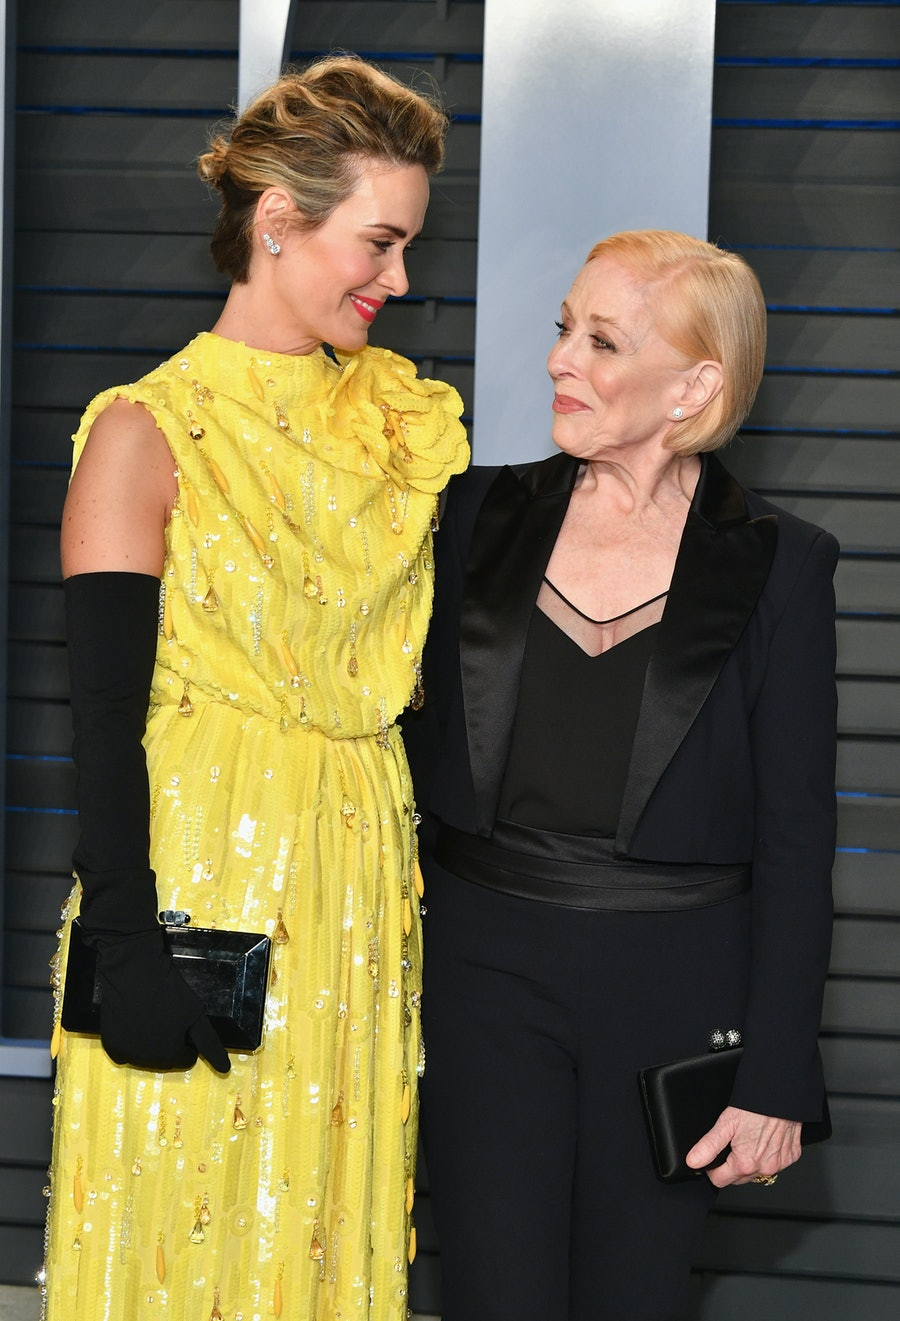 Sarah Paulson and Holland Taylor being love birds